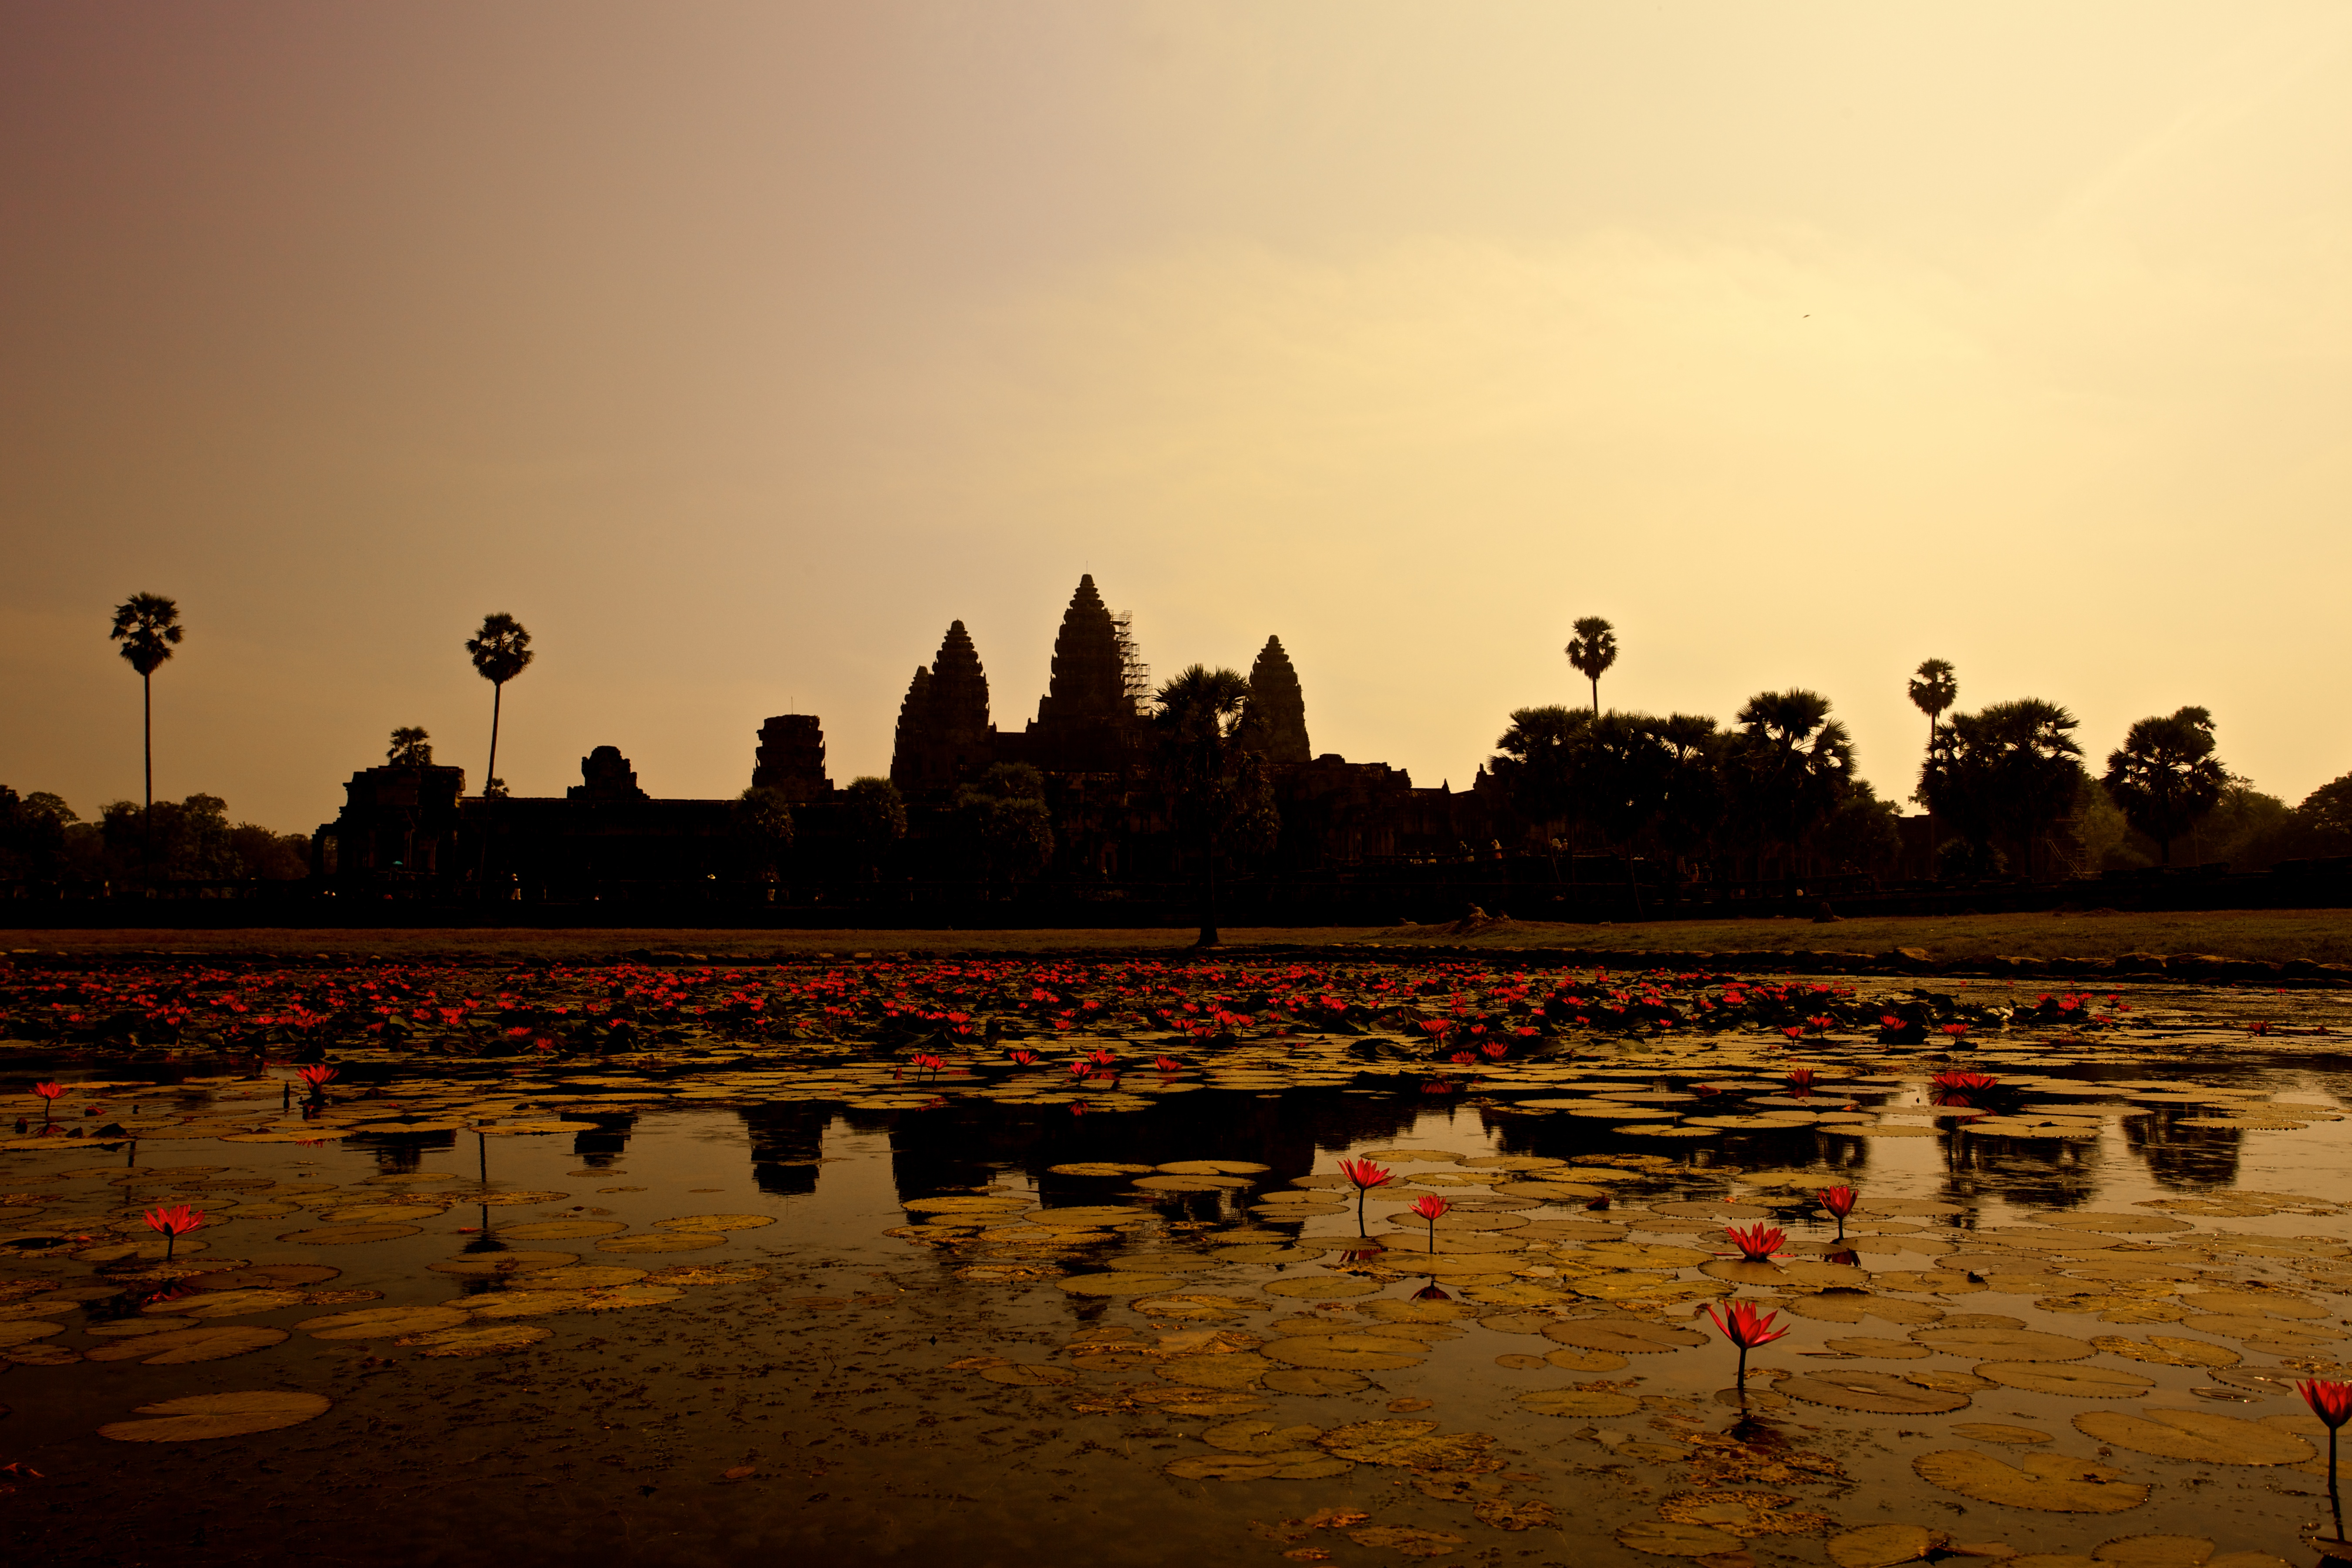 154449 download wallpaper Nature, Lilies, Panorama, Pond, Cambodia screensavers and pictures for free